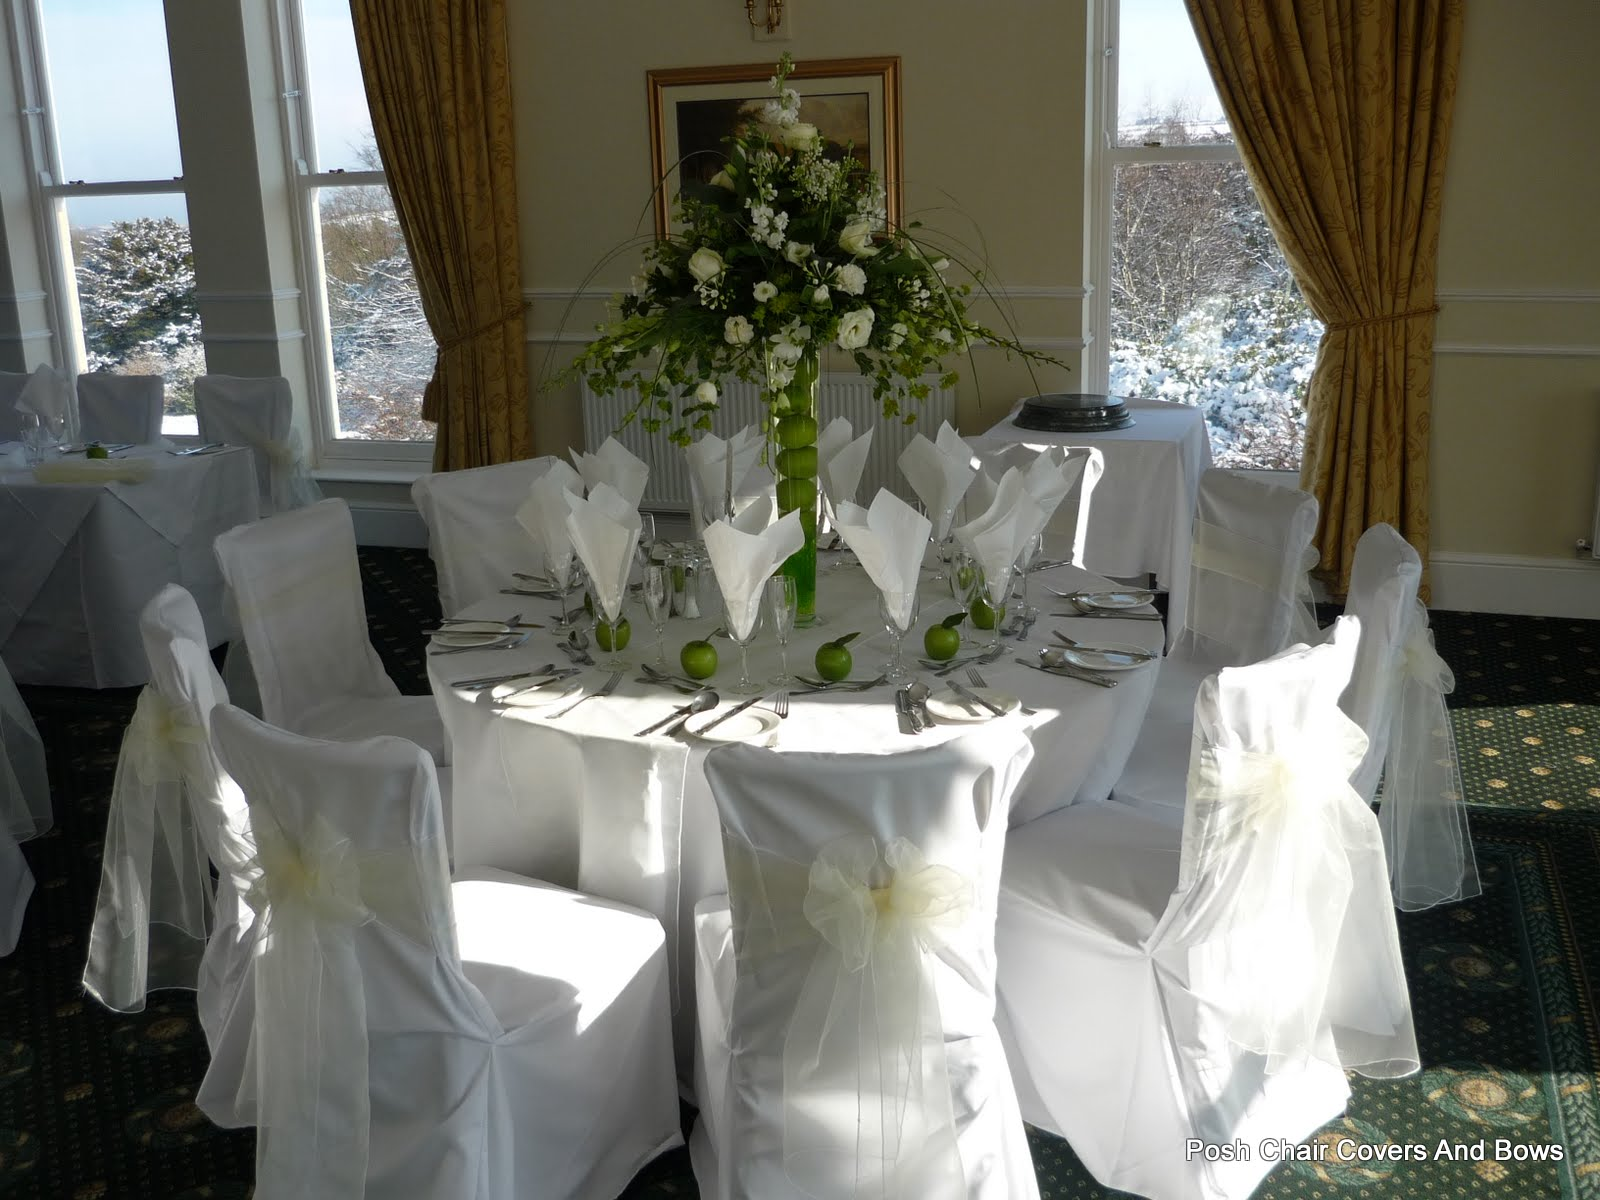 chair cover hire sunderland price for christmas covers posh bows chiavari chairs flower wall grinkle park saltburn cleveland